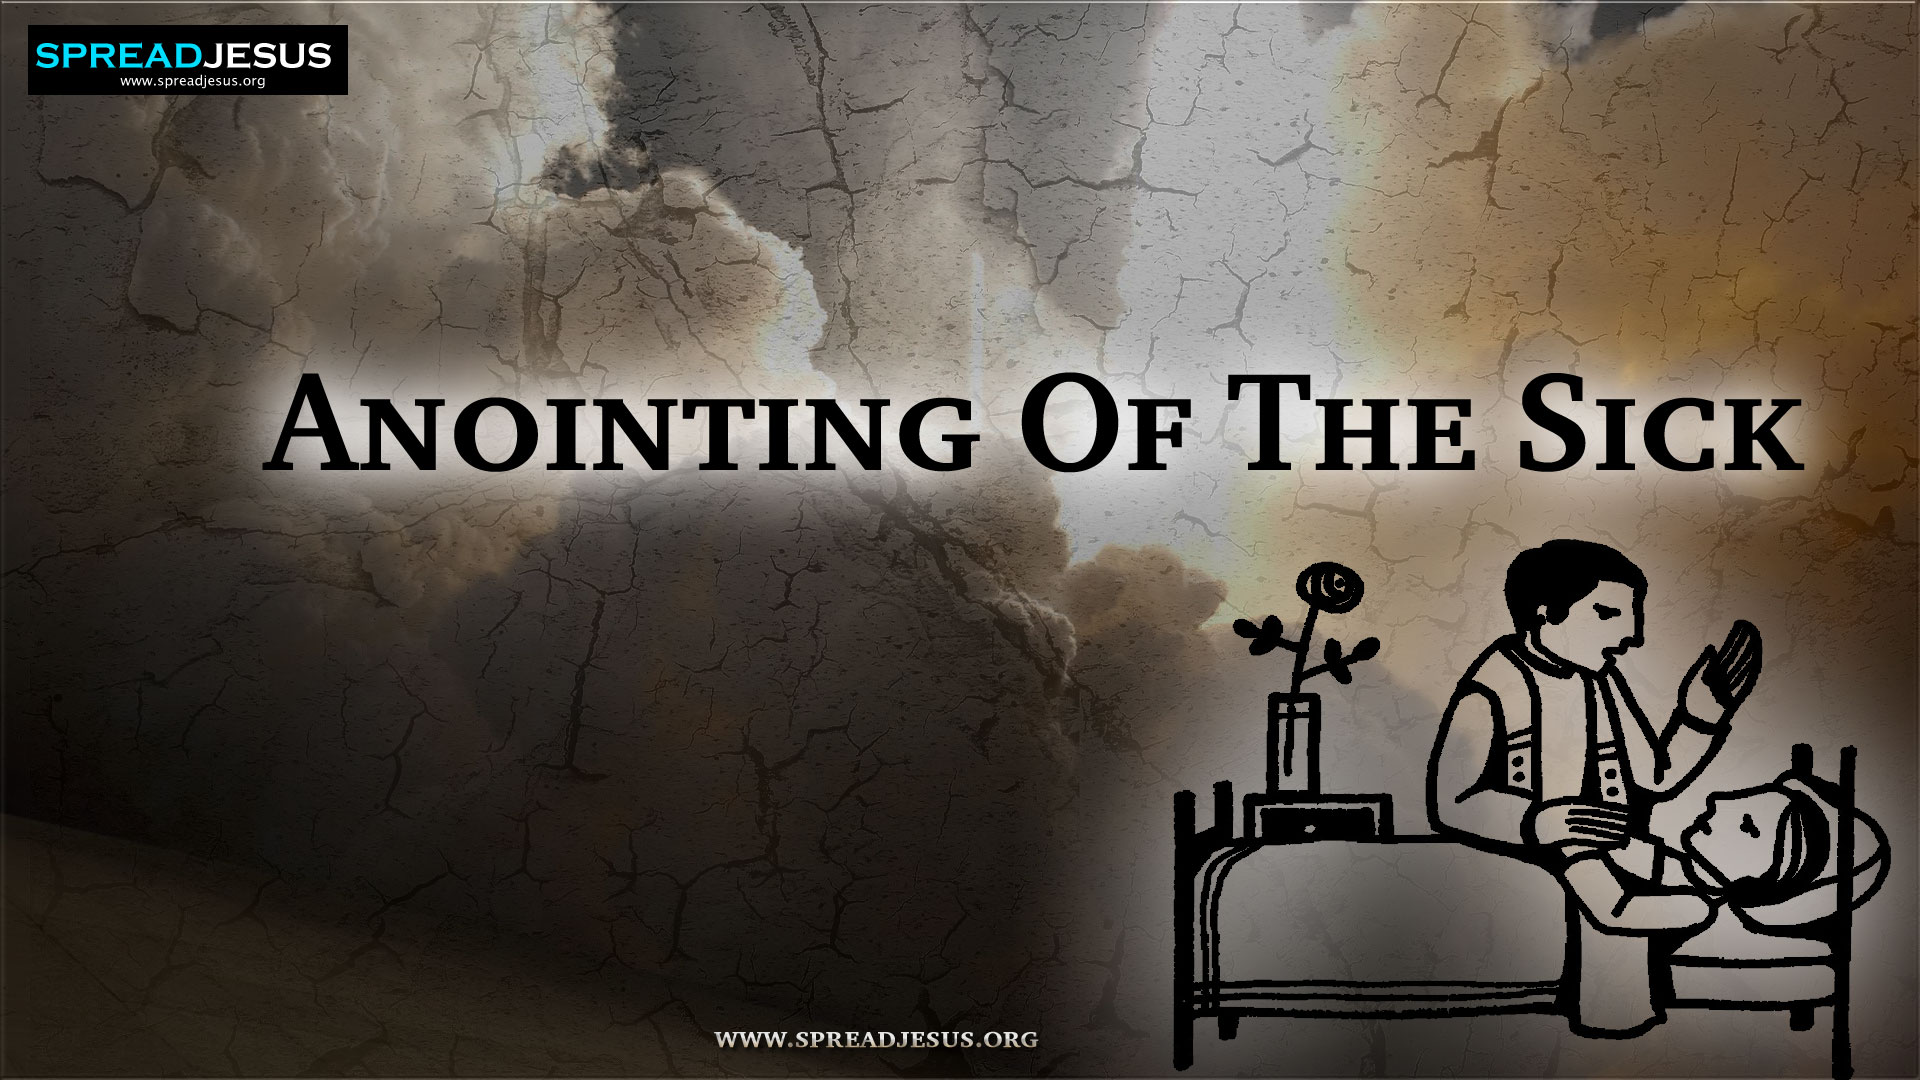 Sacrament of Extremeunction or Anointing of the Sick